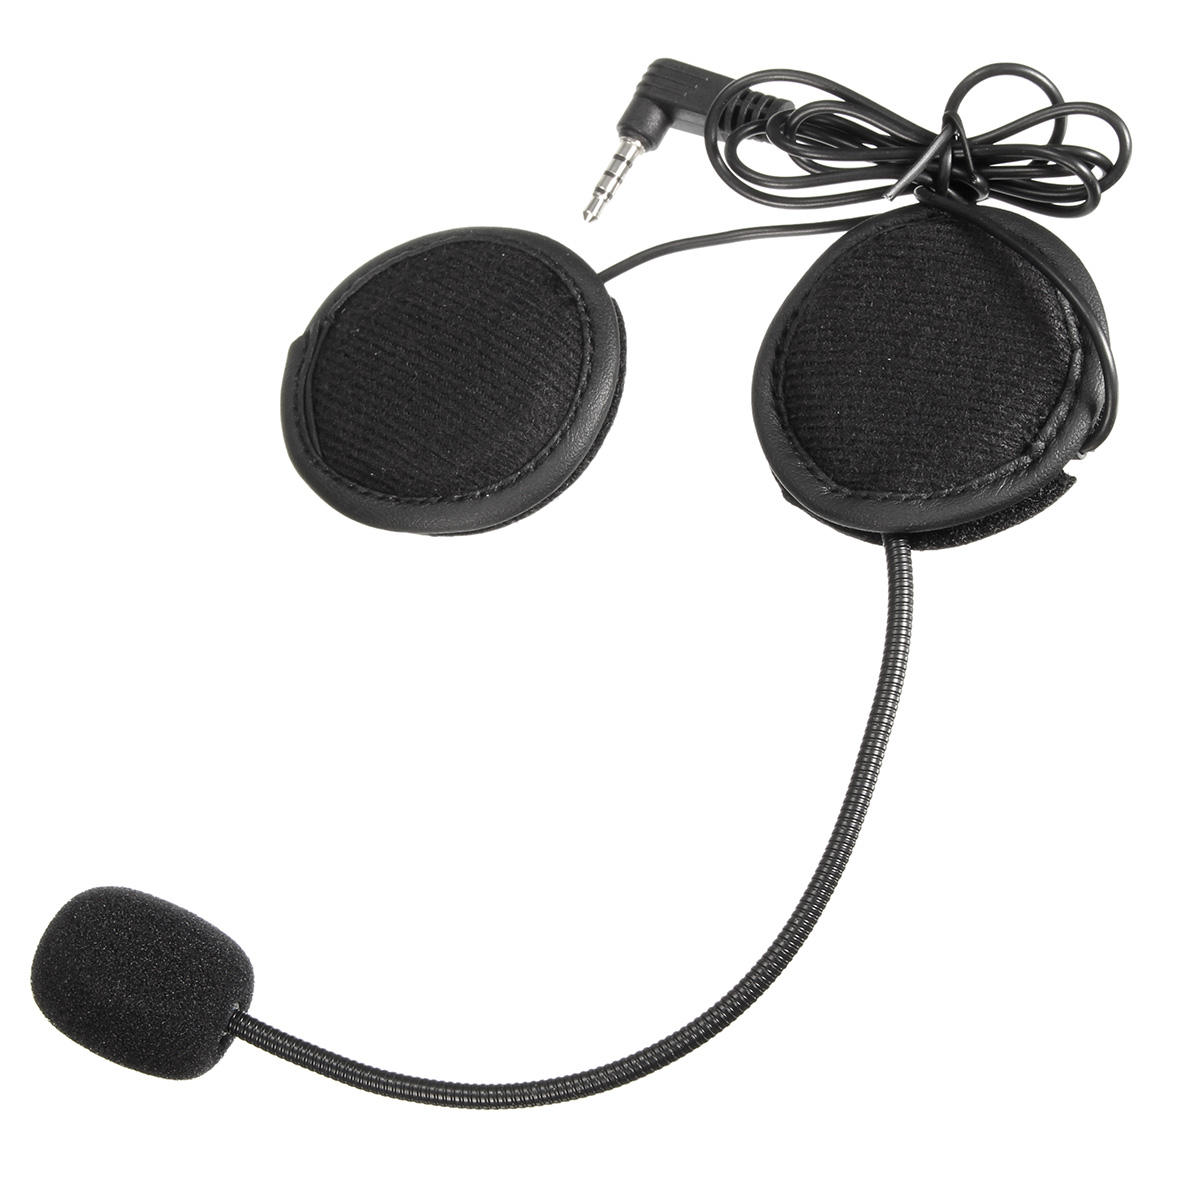 Motorcycle Helmet Headset,Portable Compact Stereo USB Motorcycle Bluetooth Headphone,Communication Helmet Earphone with Bass HD Speakers,Noise Cancelling